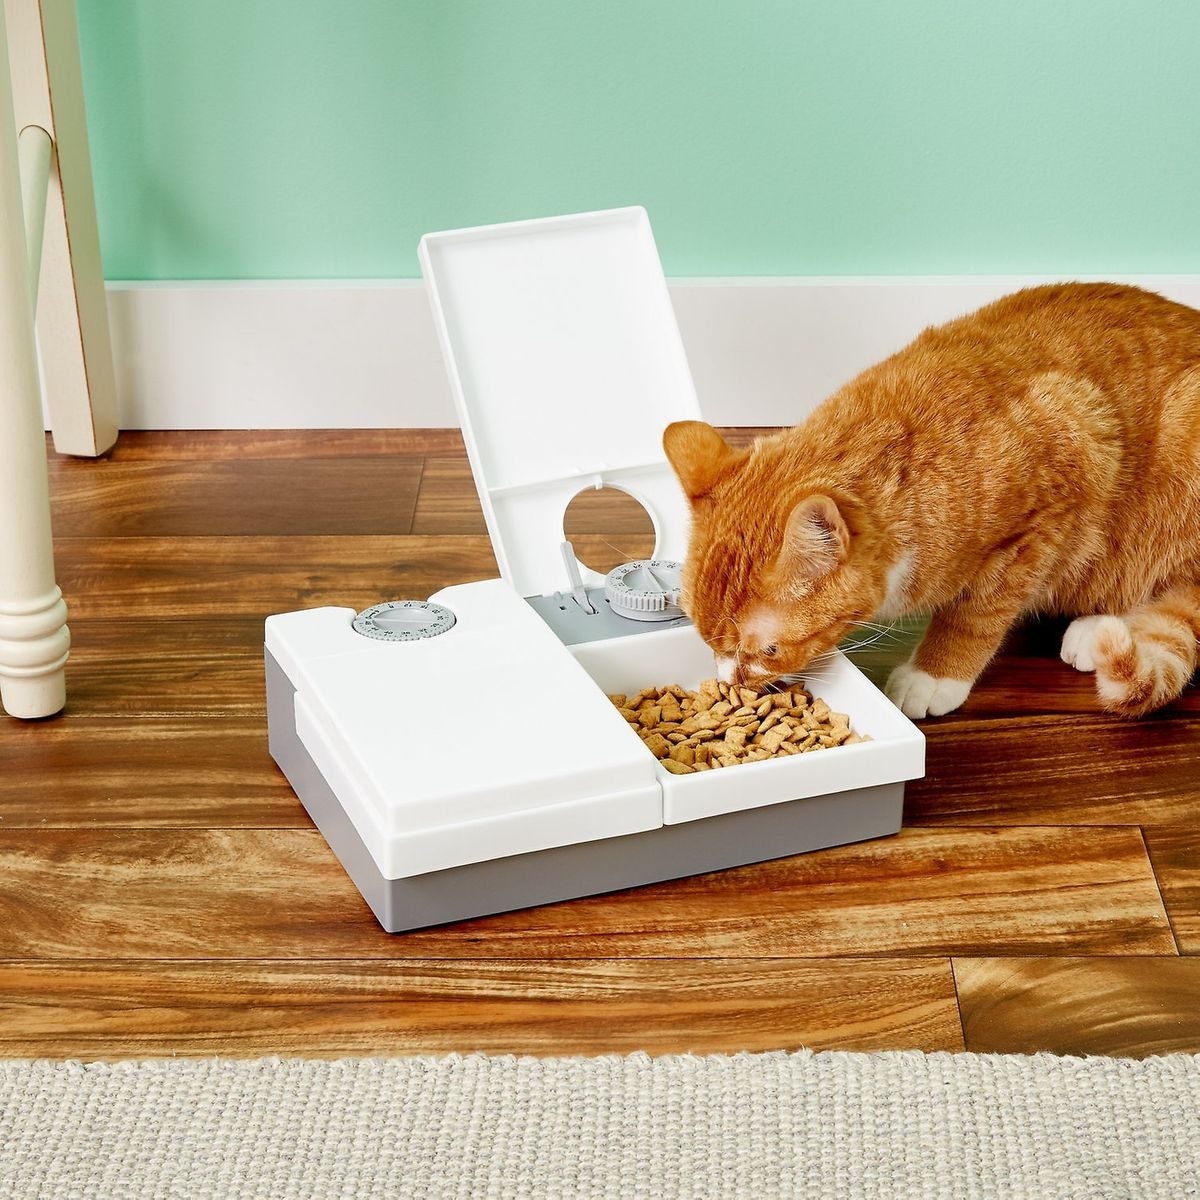 The 14 Best Automatic Pet Feeders And Water Fountains The Strategist New York Magazine